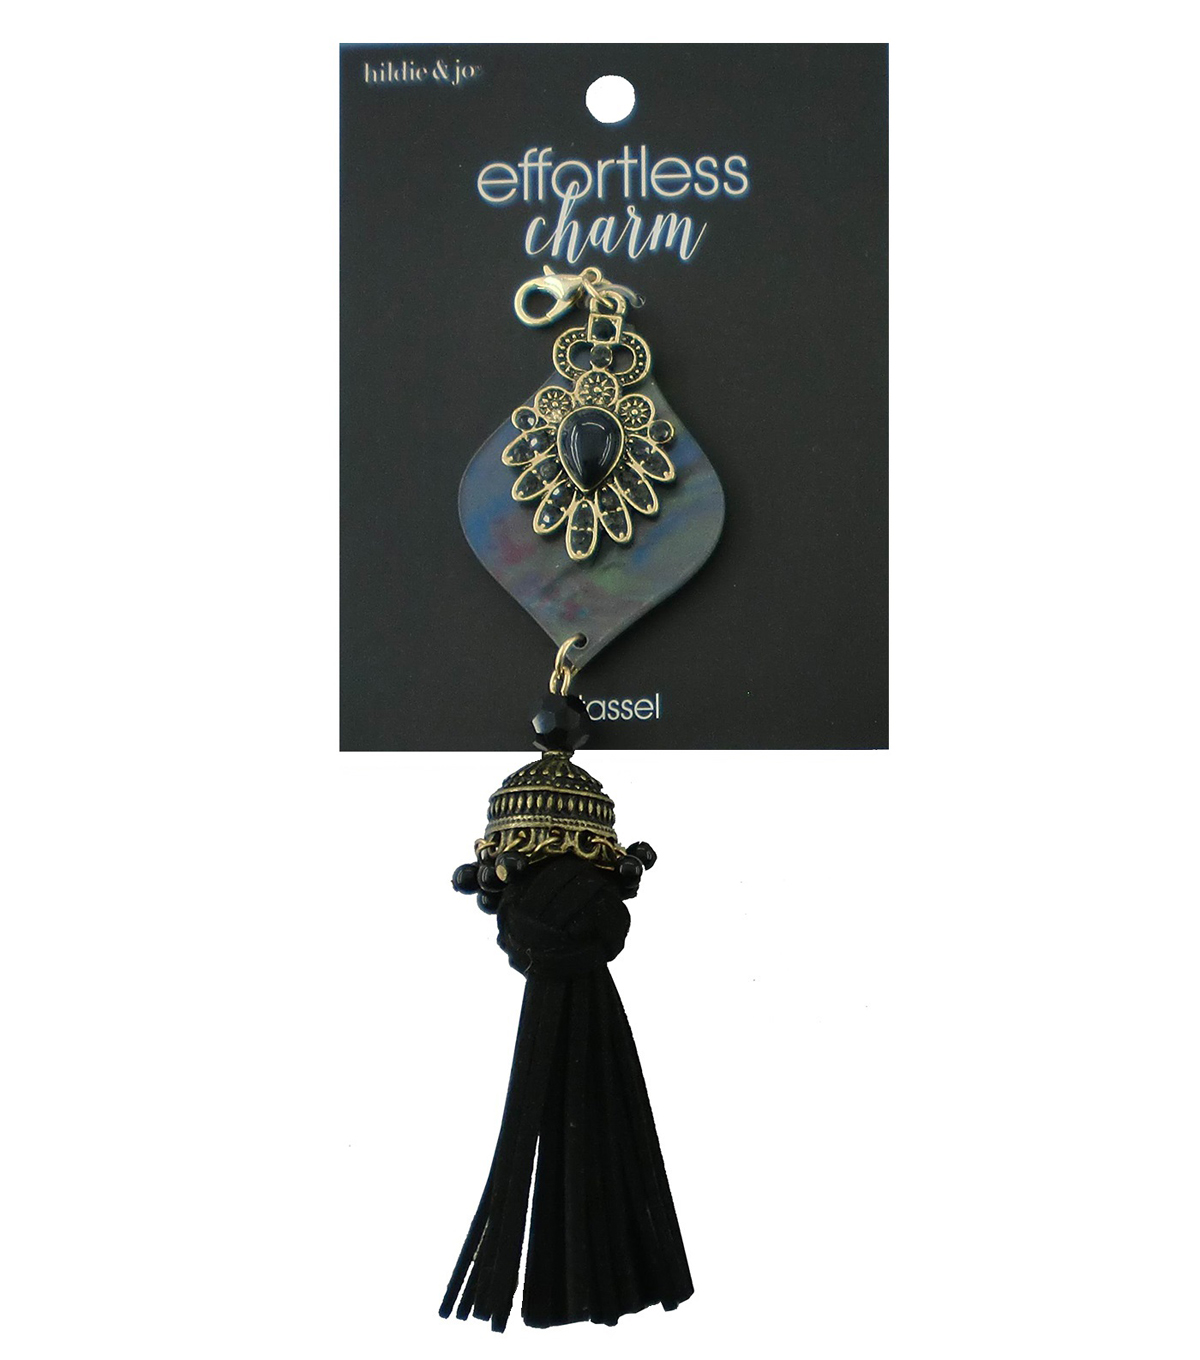 hildie & jo Effortless Charm Antique Gold Tassel-Iridescent Faux Shell